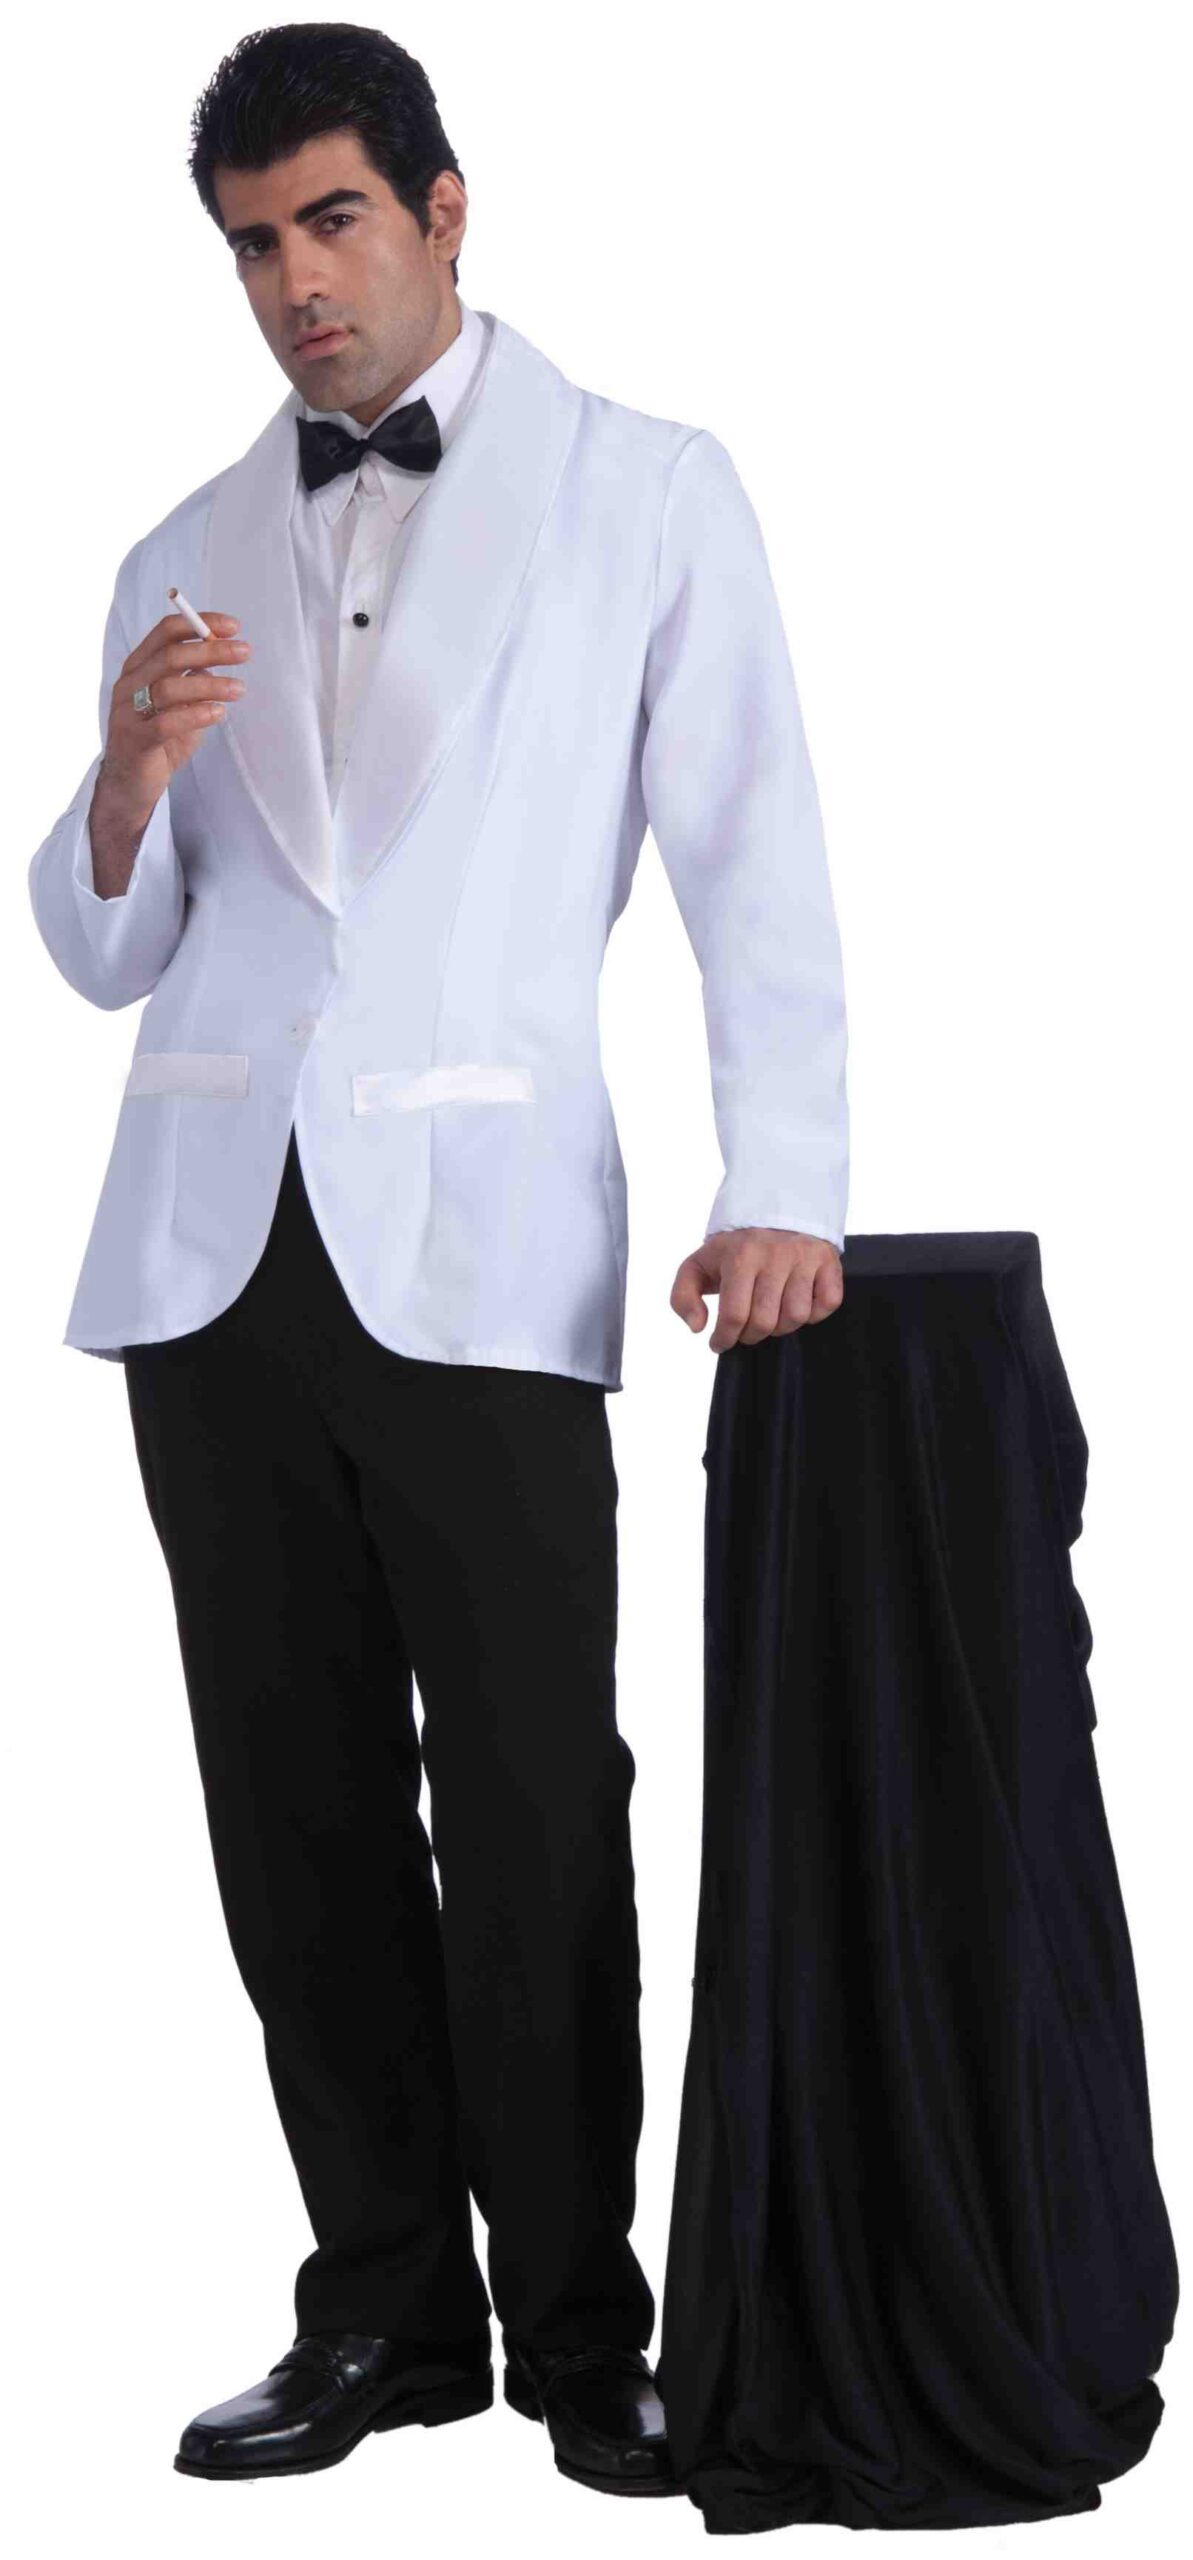 adult male in james bond tuxedo with cigarette